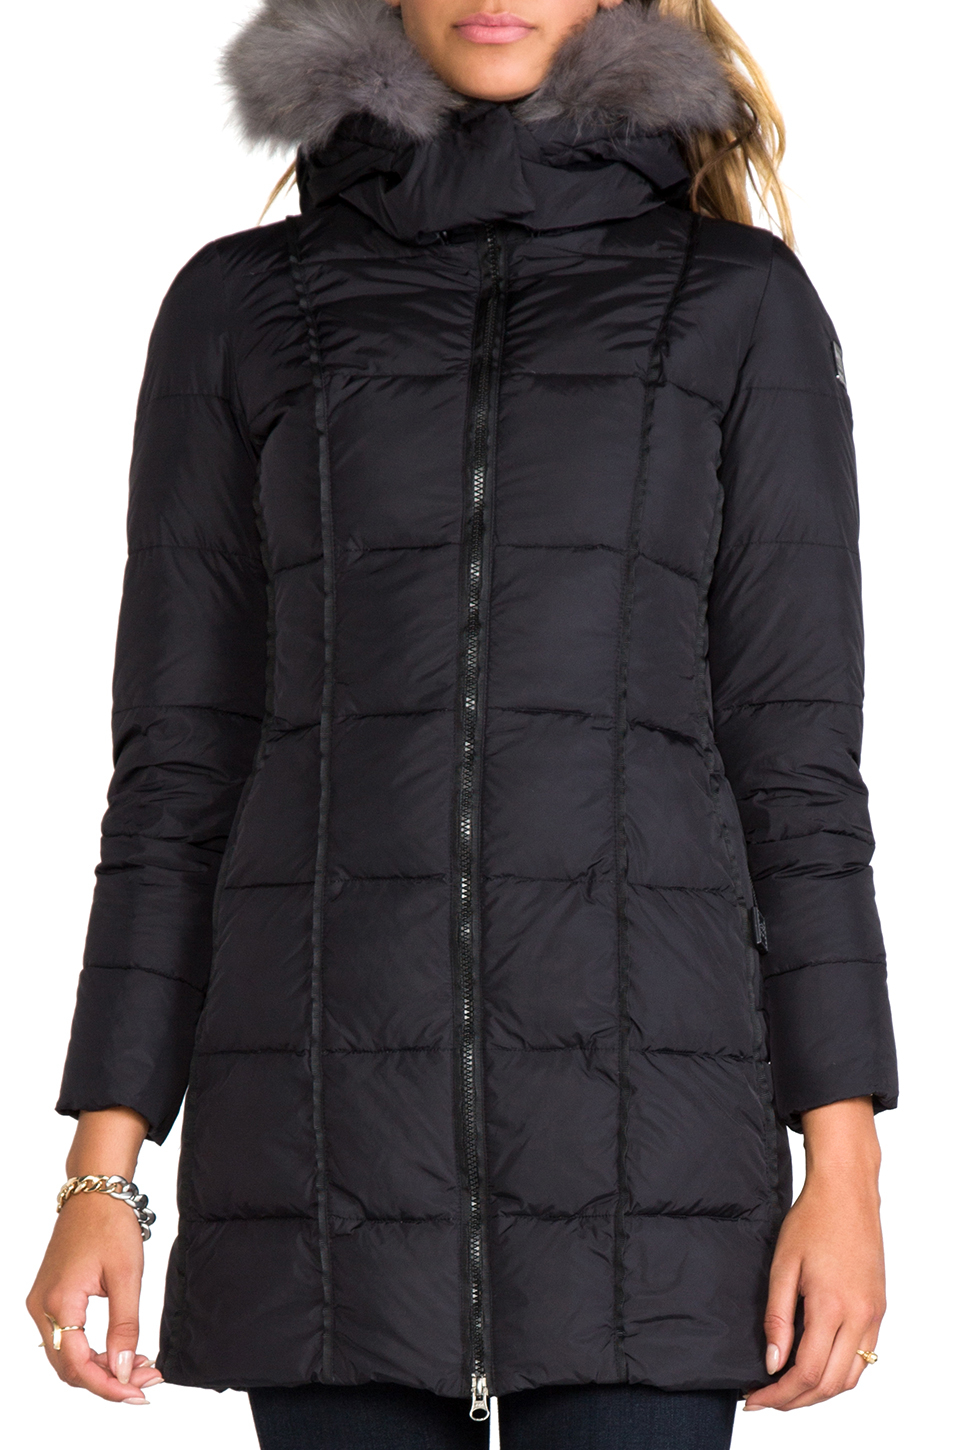 82074c3369f0a Add Down Coat with Hood and Fur in Black in Black - Lyst